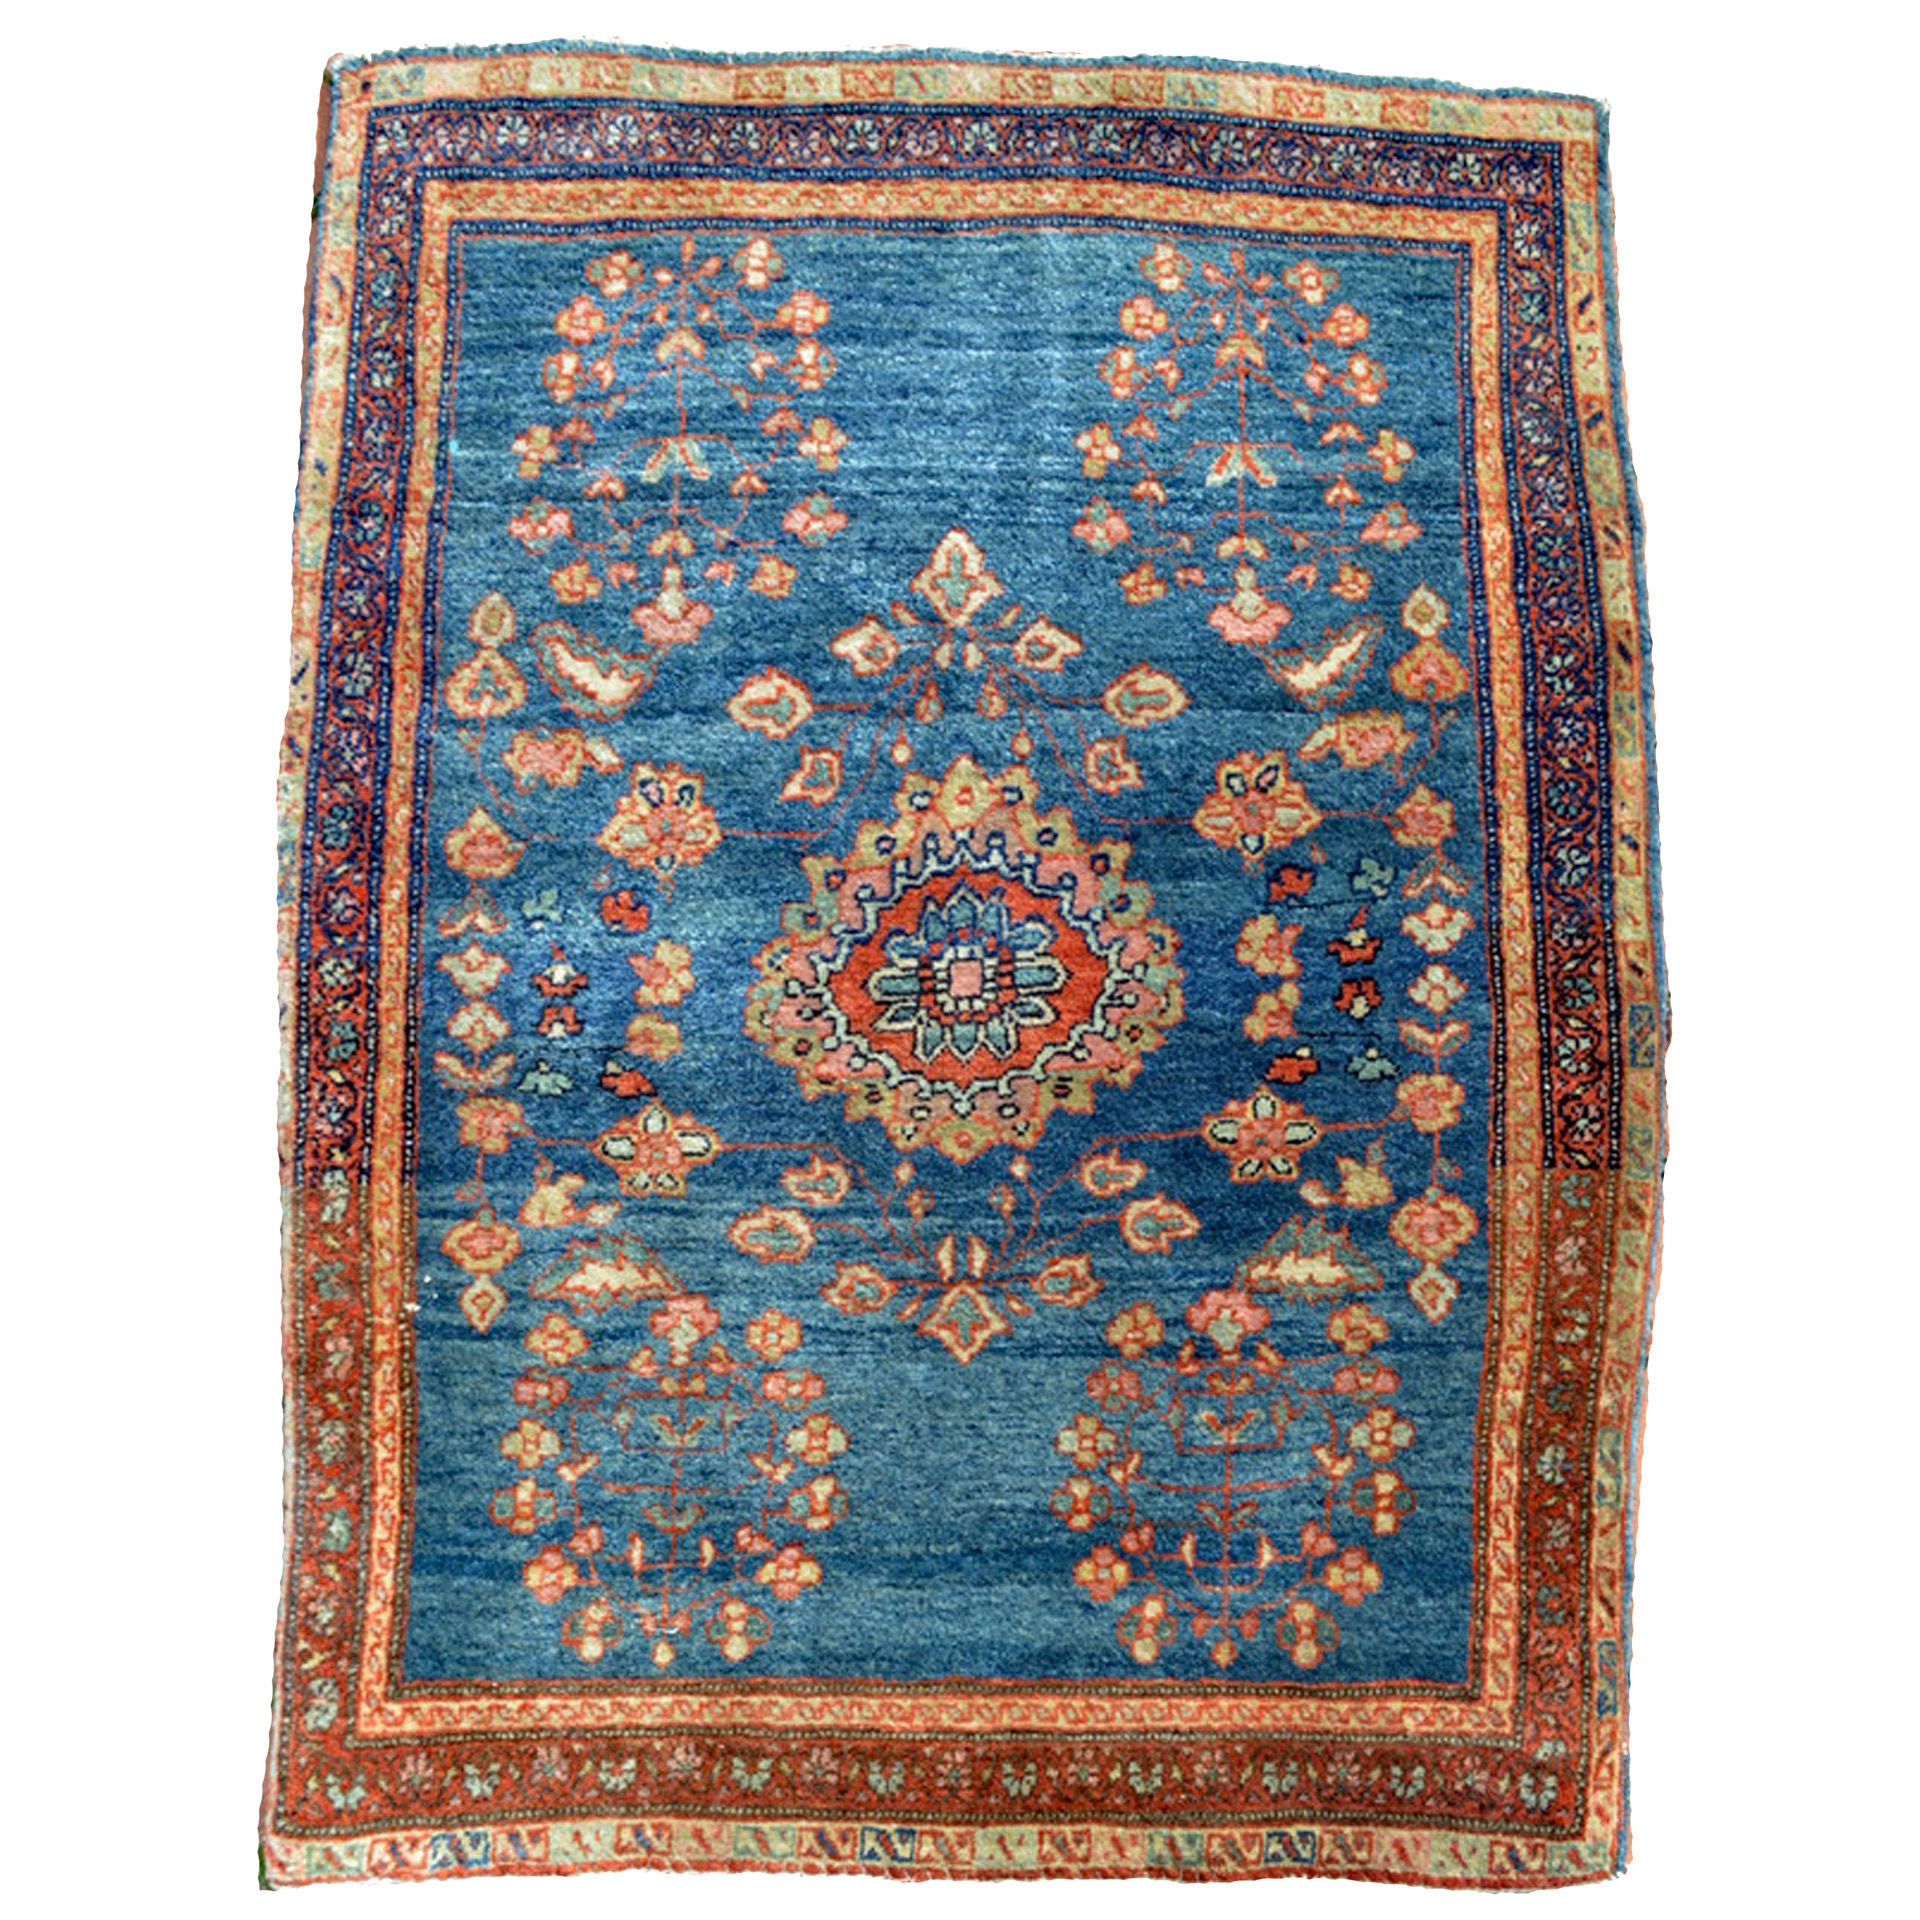 """An antique Persian Fereghan Sarouk """"Mat"""" or """"Poshti"""", terms for a Persian rug measuring approximately 2 feet by 3 feet - Douglas Stock Gallery, Antique rugs Boston,MA area, Antique Oriental Rugs Natick, Wellesley, Newton,MA area"""